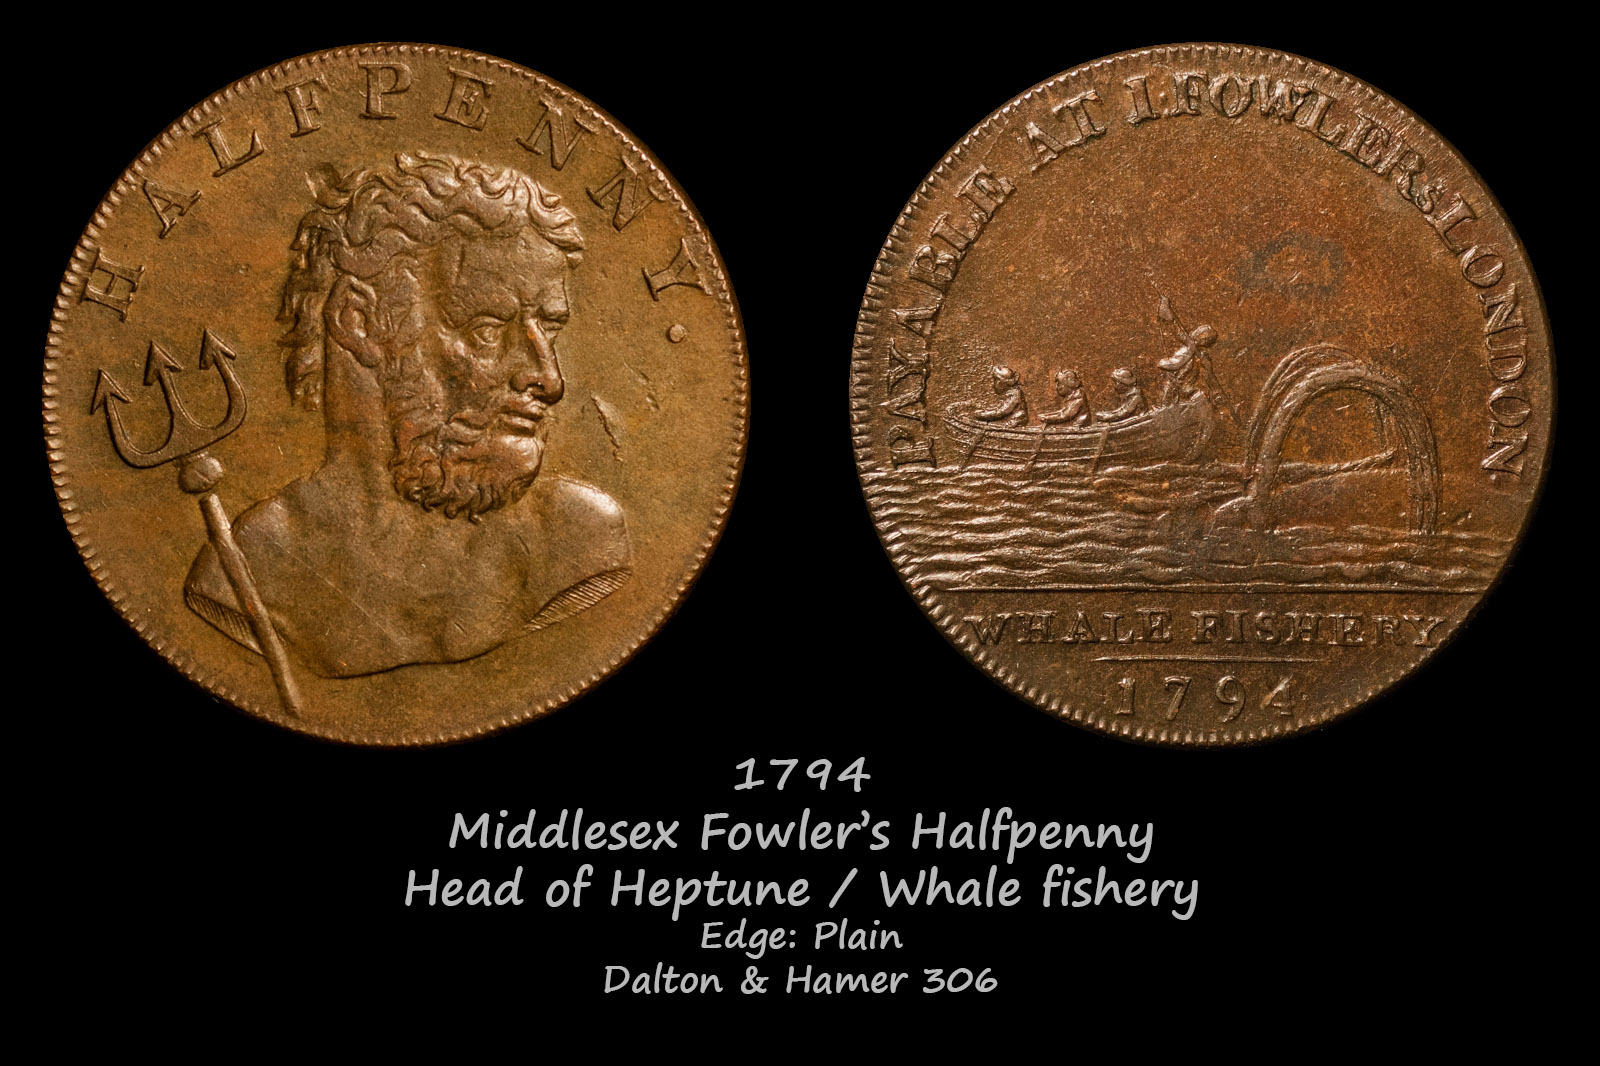 Middlesex Fowler's Halfpenny D&H306